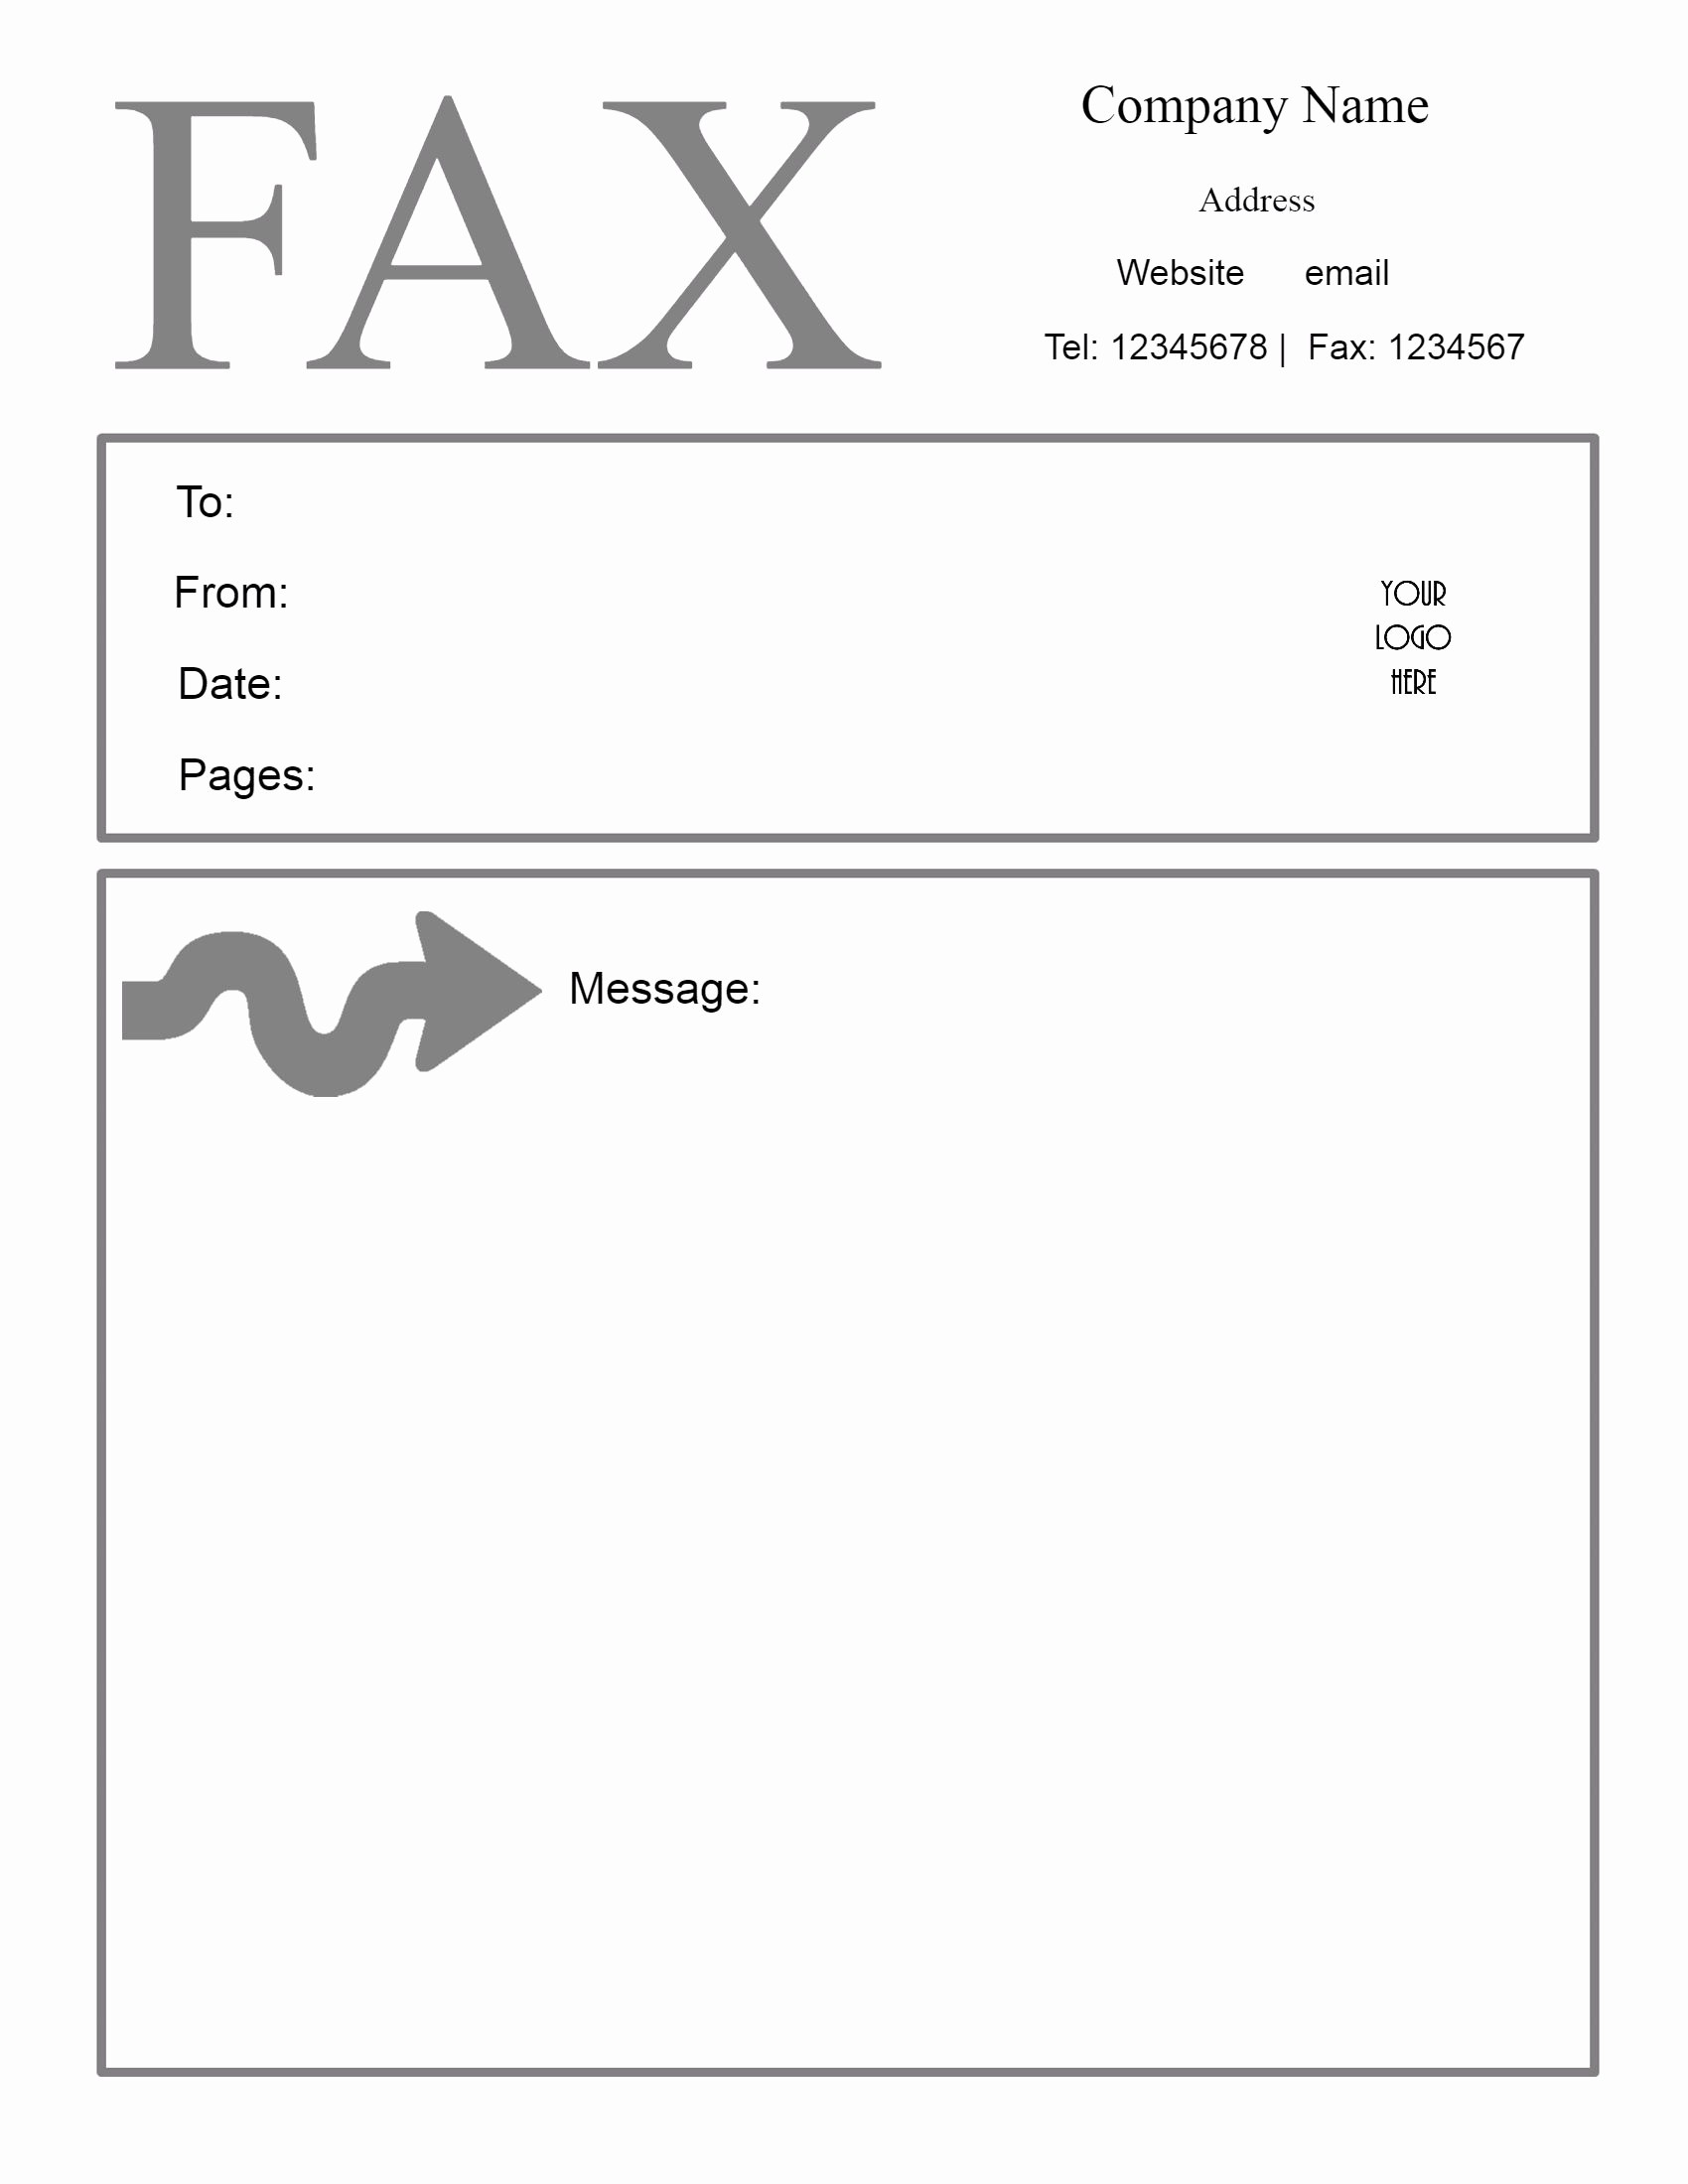 Fax Cover Sheet Word Document Awesome Free Fax Cover Letter Template